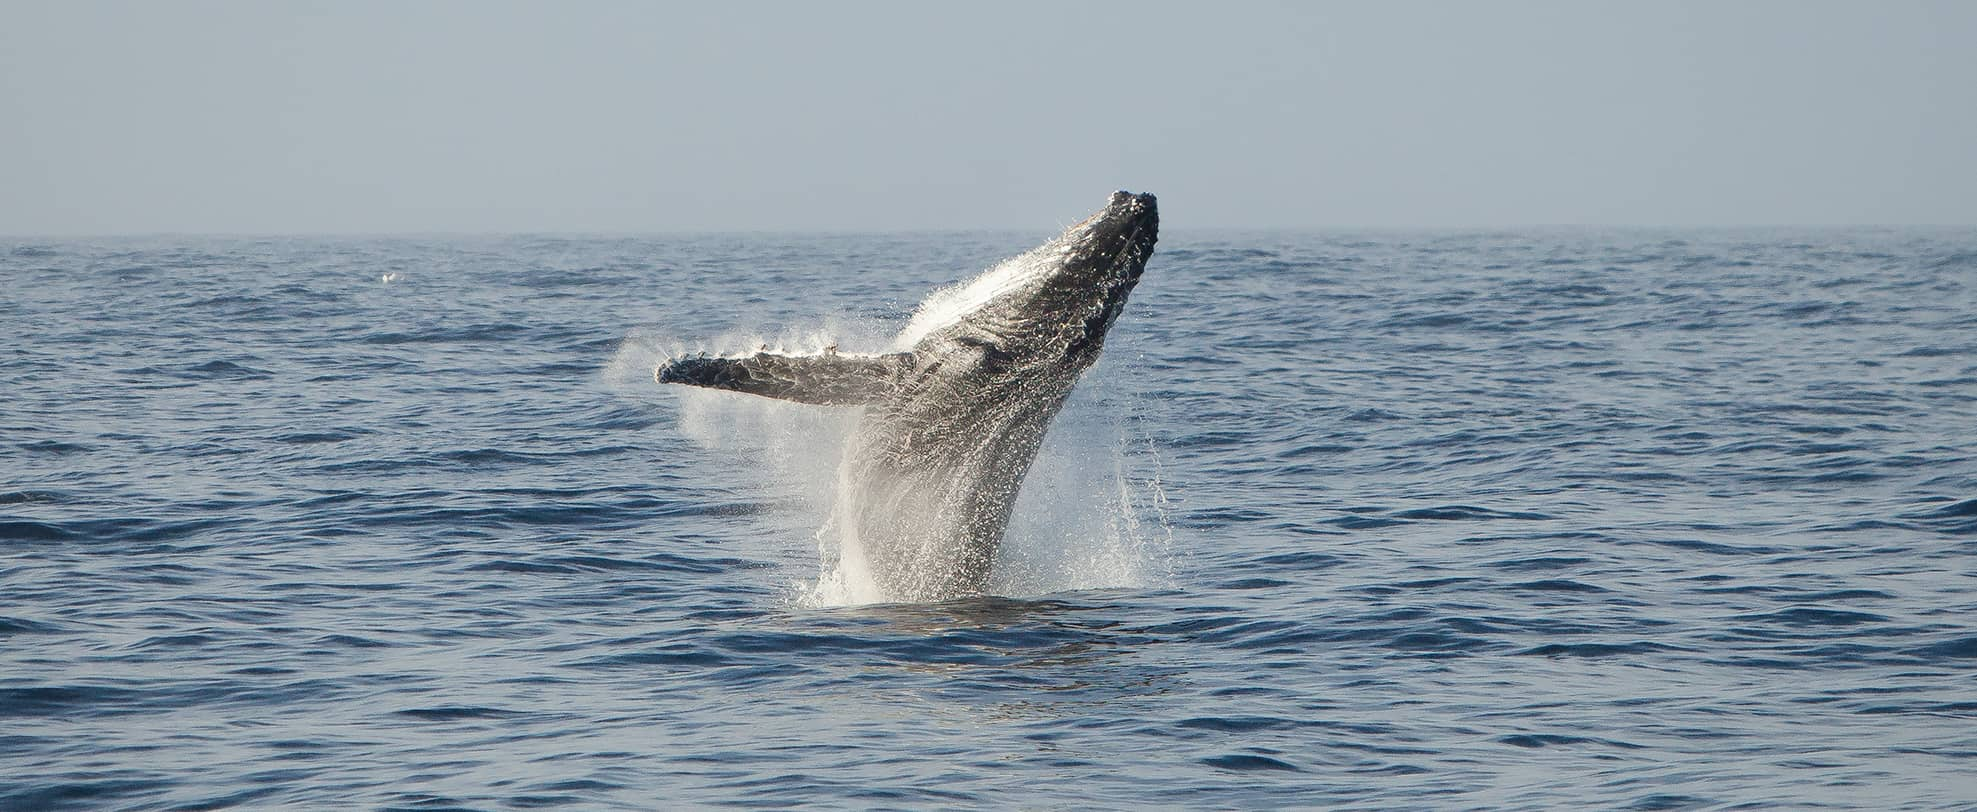 Humpback whale breaching above the water.